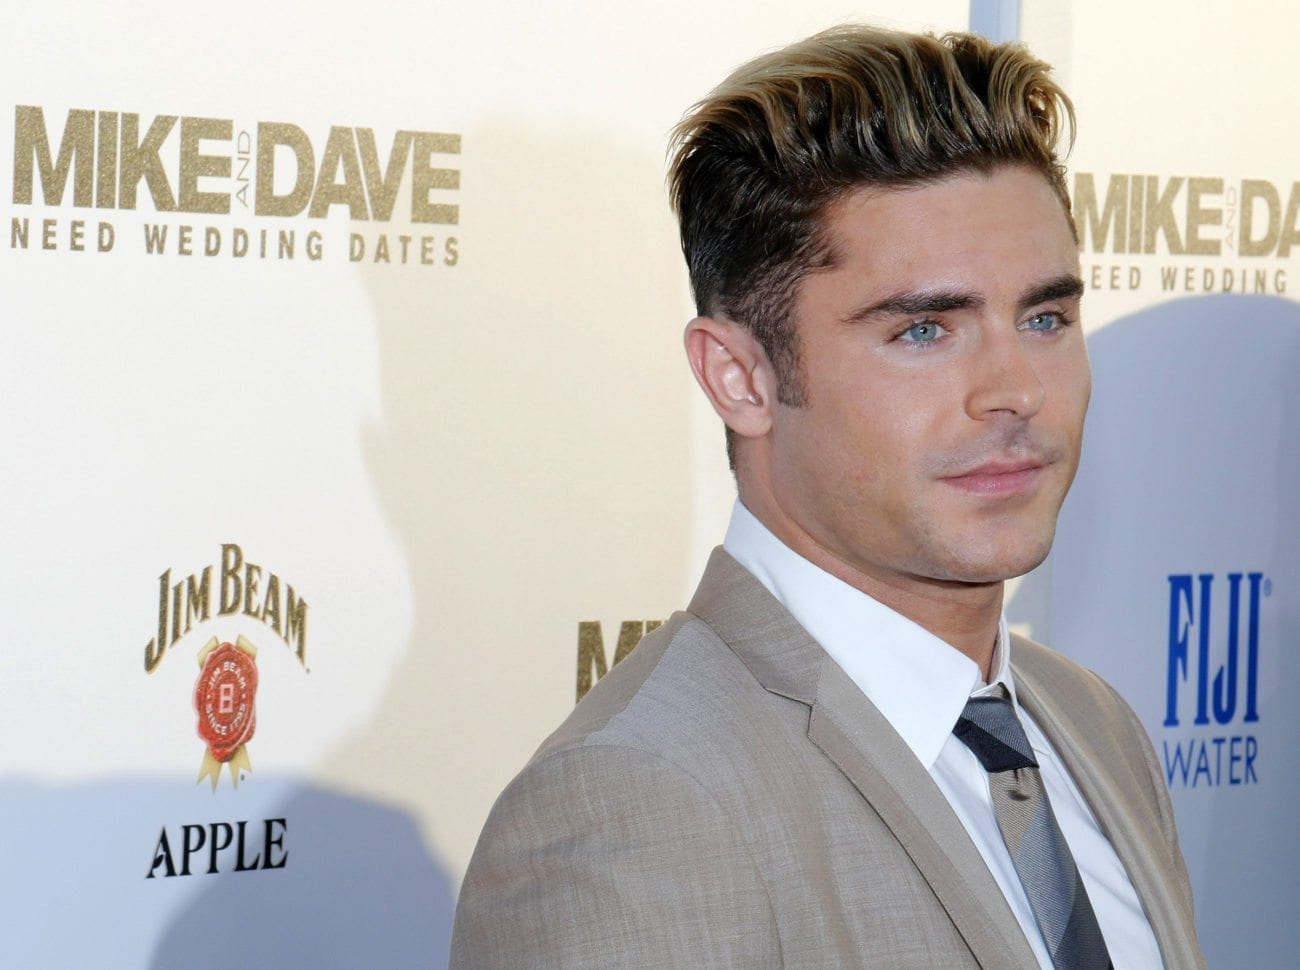 Zac Efron has signed on to star as notorious American serial killer Ted Bundy in 'Extremely Wicked, Shockingly Evil and Vile'.